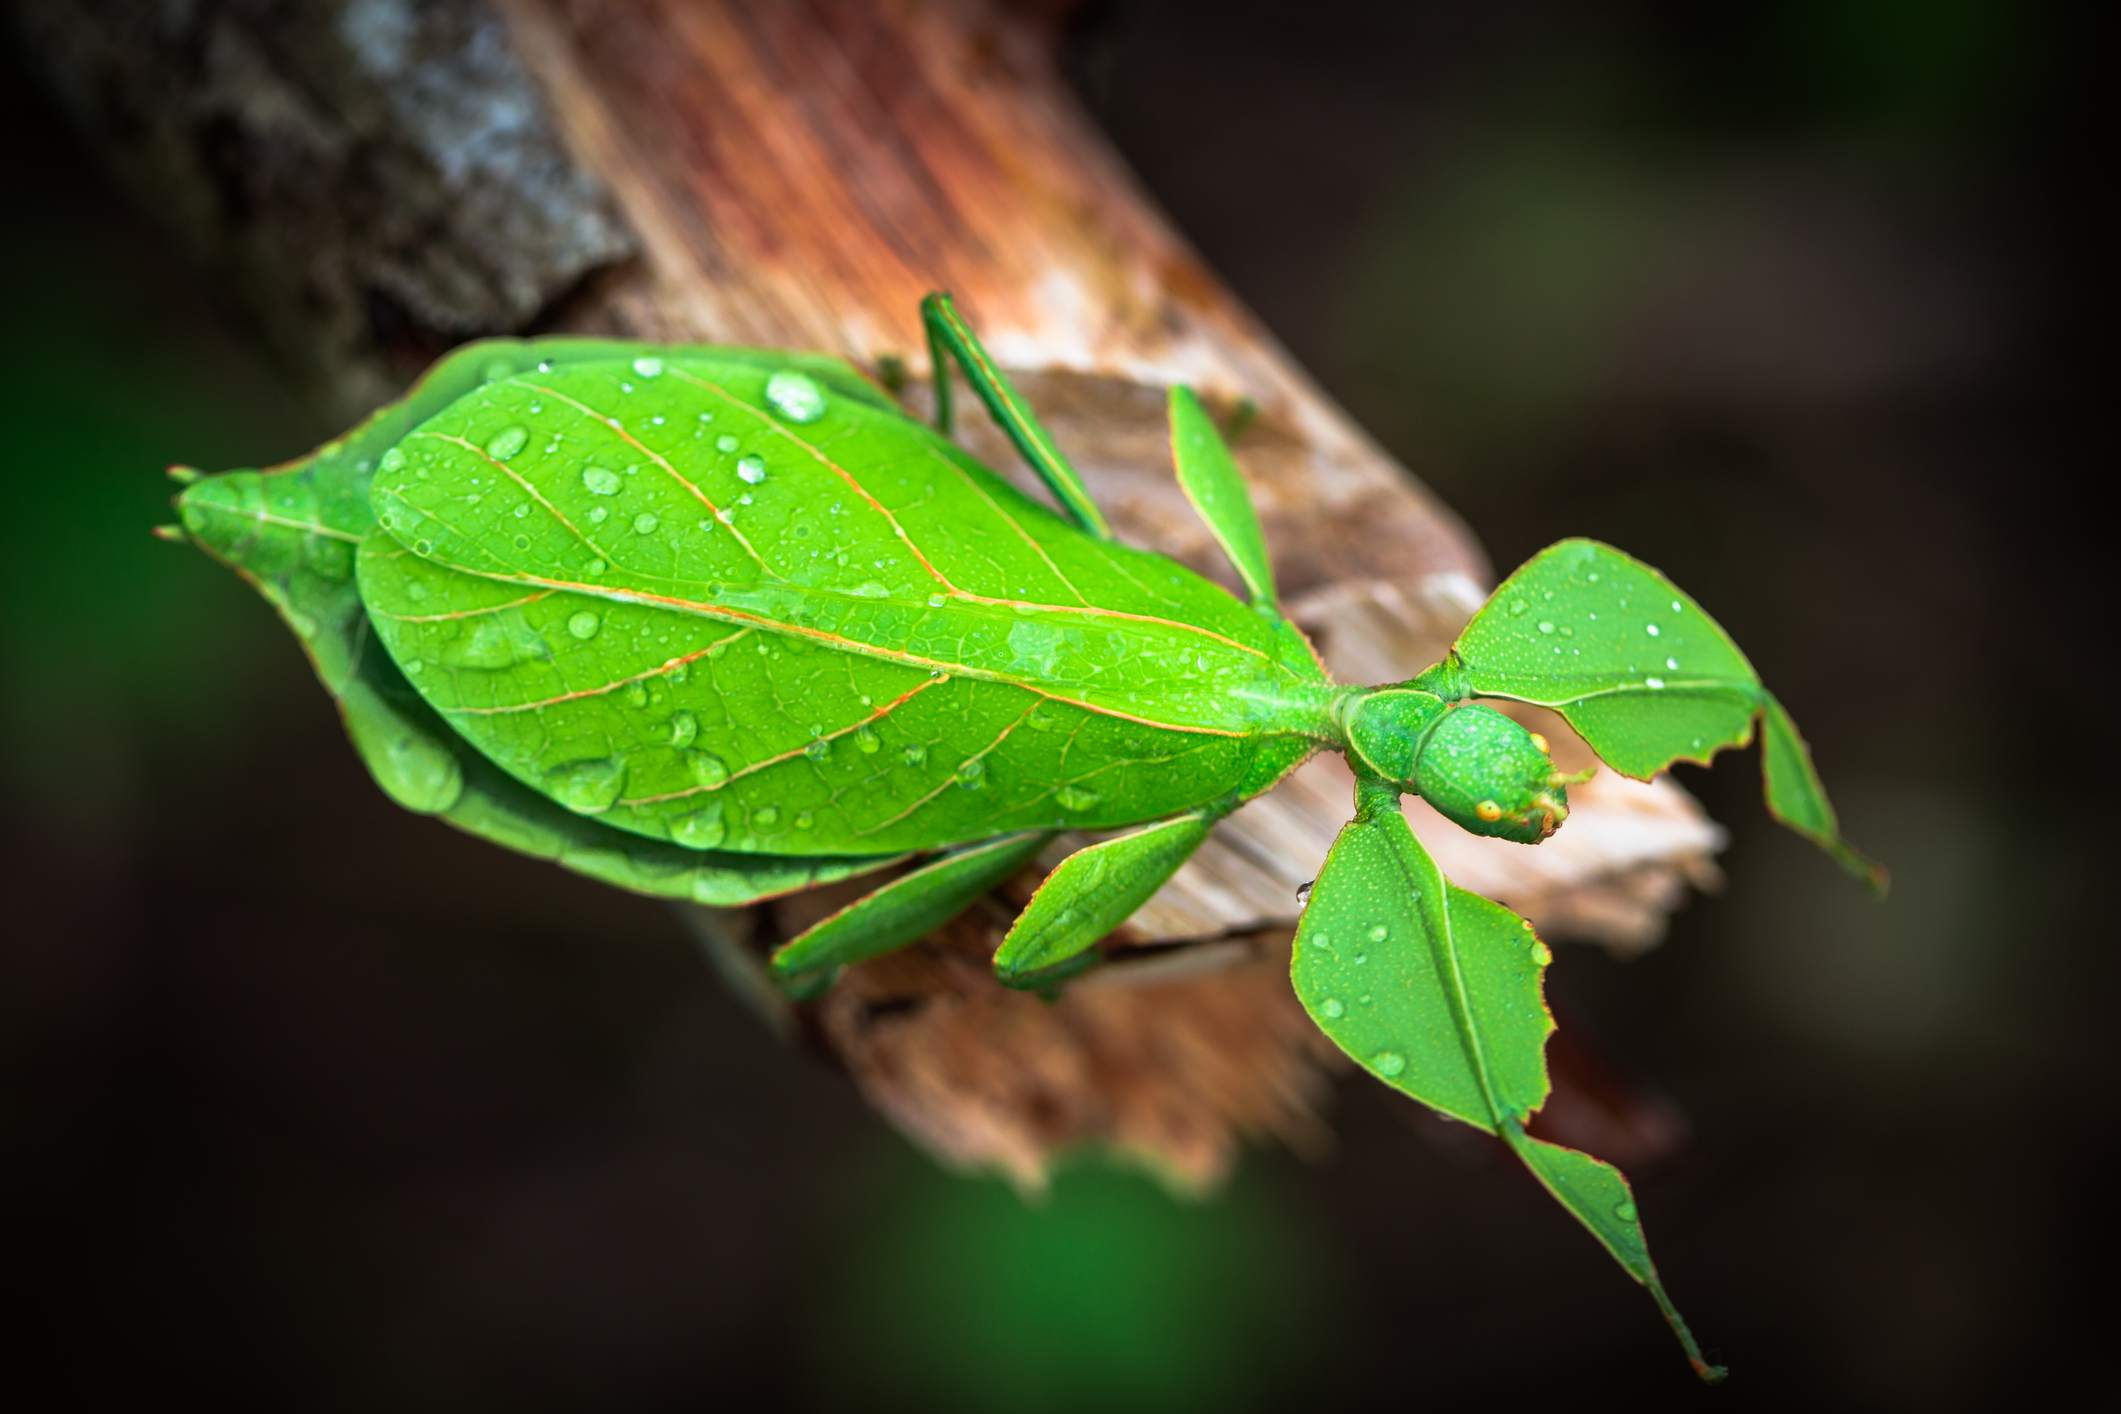 Green leaf insect perched on a branch.